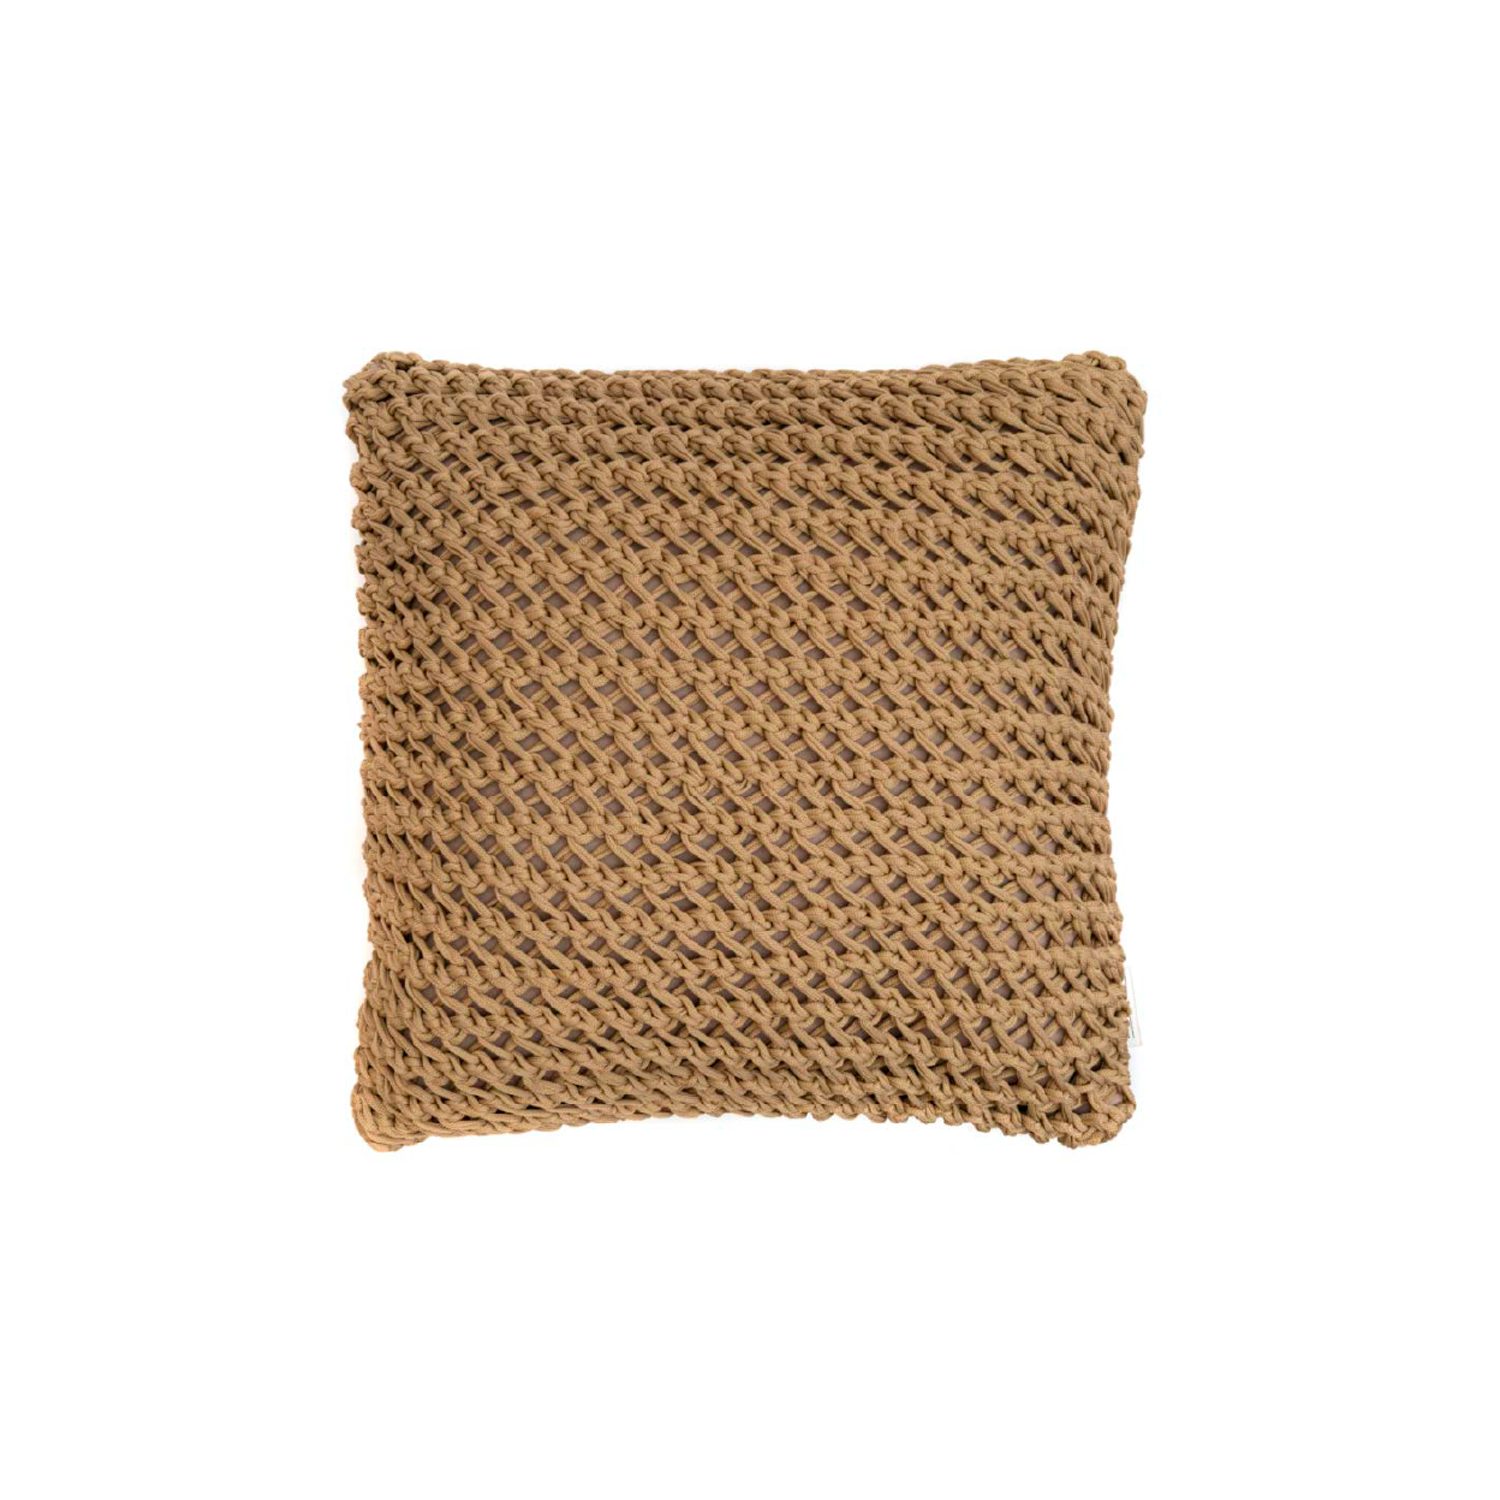 Gaia Neo Cushion Square - The Gaia Neo Cushion is carefully knitted within a trained community of women that found in their craft a way to provide for their families. The outdoor collection is made with synthetic fibres, resistant to weather exposure. The use of neoprene brings comfort and technology to the cushions.  The front panel is in neoprene combined with hand woven nautical cord, made in Brazil.  The inner cushion is in Hollow Fibre, made in the UK.  Please enquire for more information and see colour chart for reference.  | Matter of Stuff